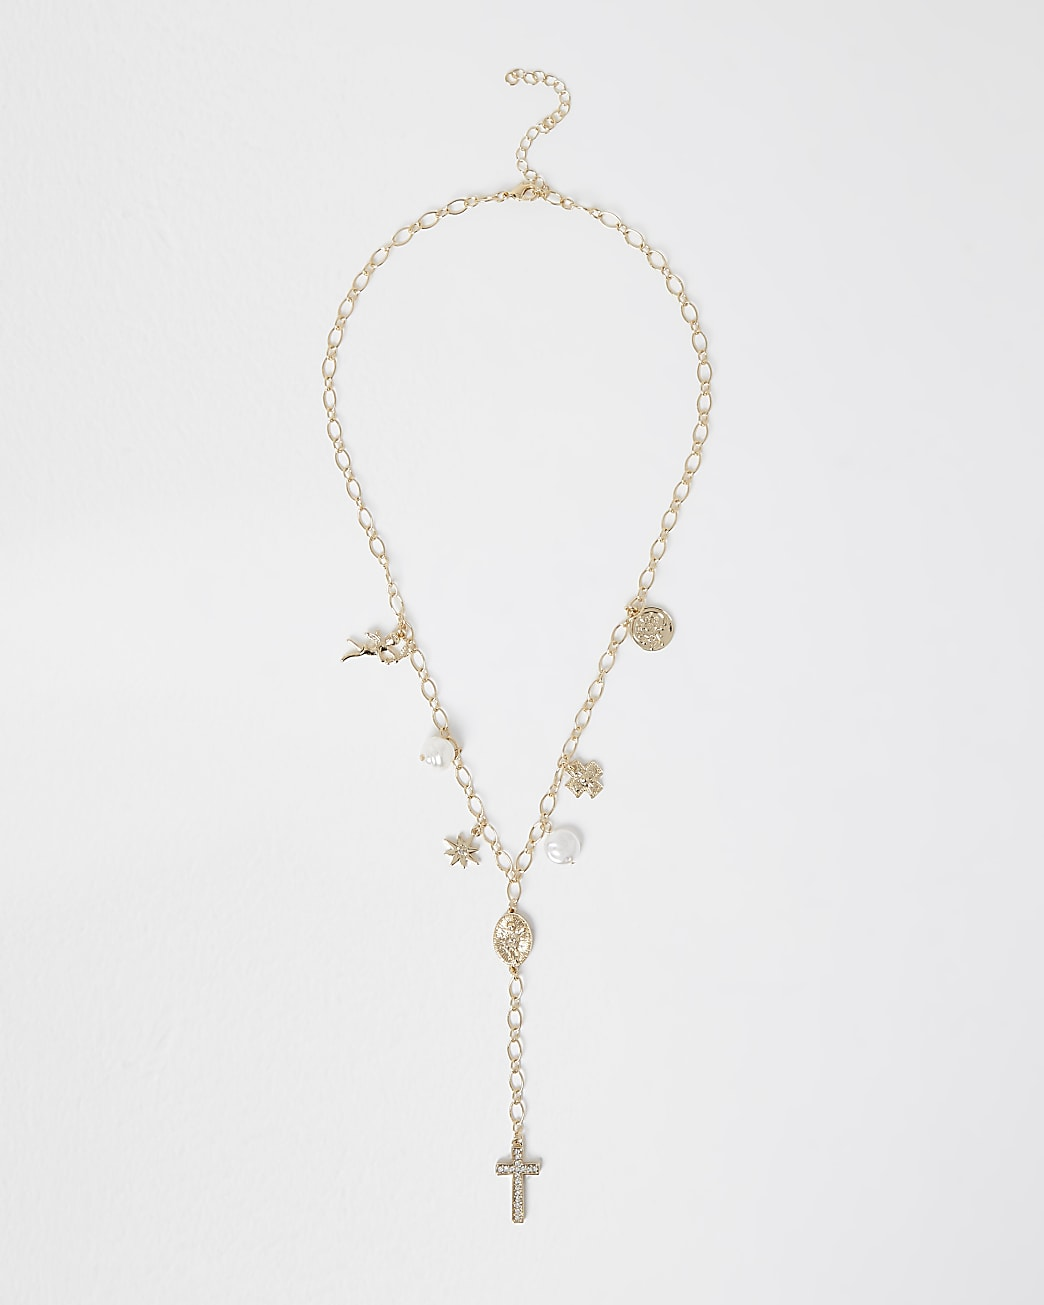 Gold Cross charm chain necklace